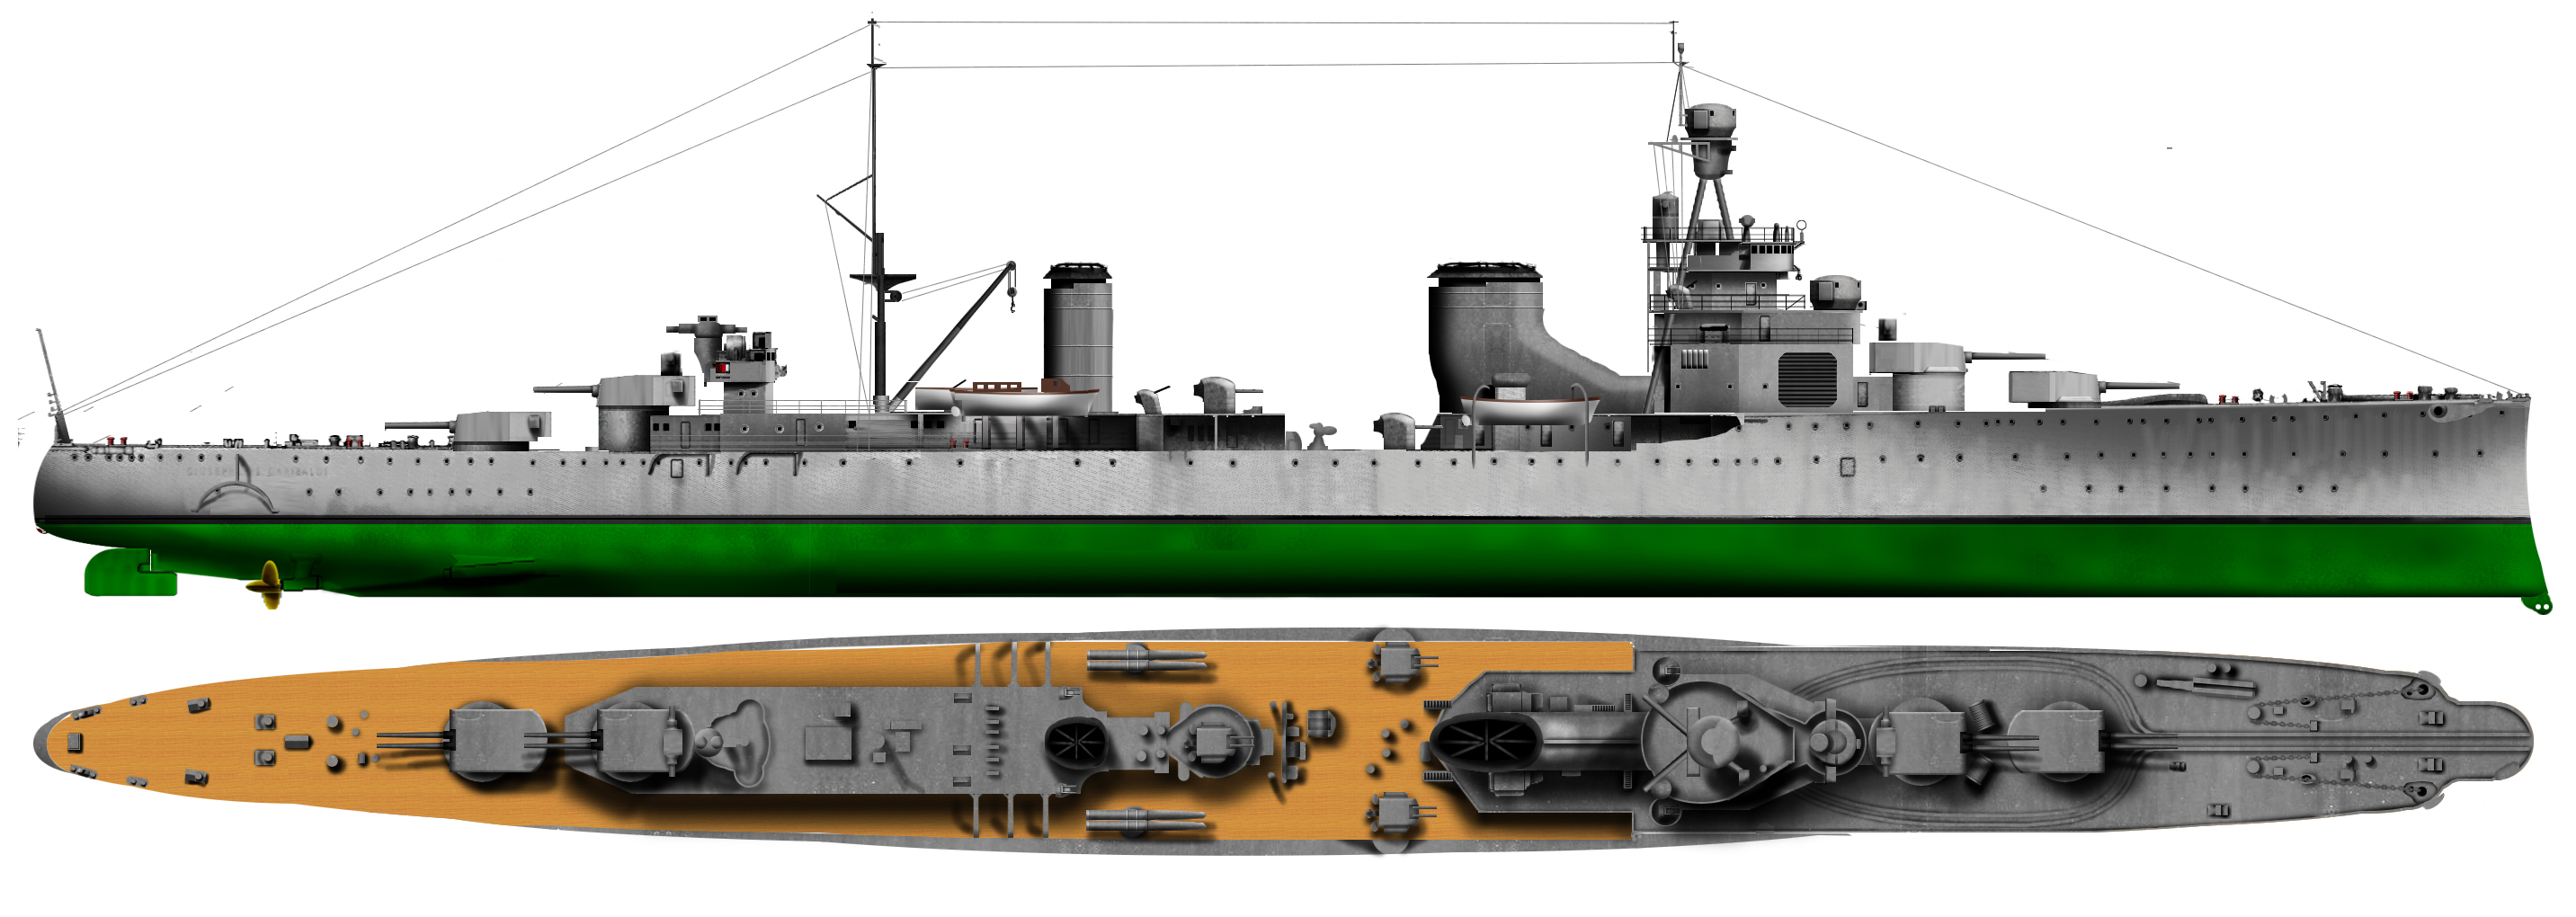 HD Illustration of the Guissano class